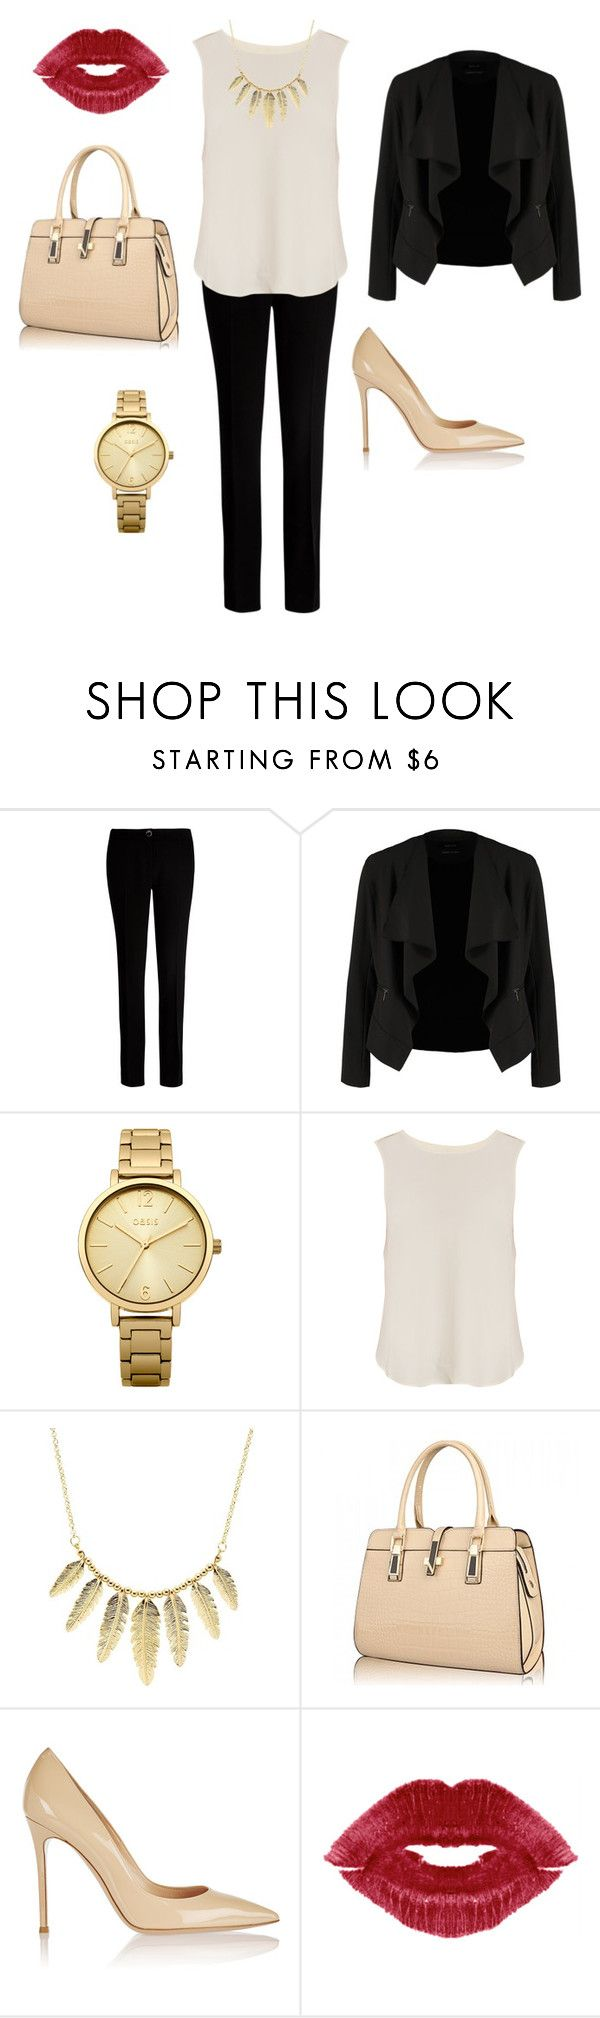 """""""Day at the office"""" by amanda-j-burke on Polyvore featuring Ted Baker, OPUS Fashion, Oasis, rag & bone, Charlotte Russe and Gianvito Rossi"""